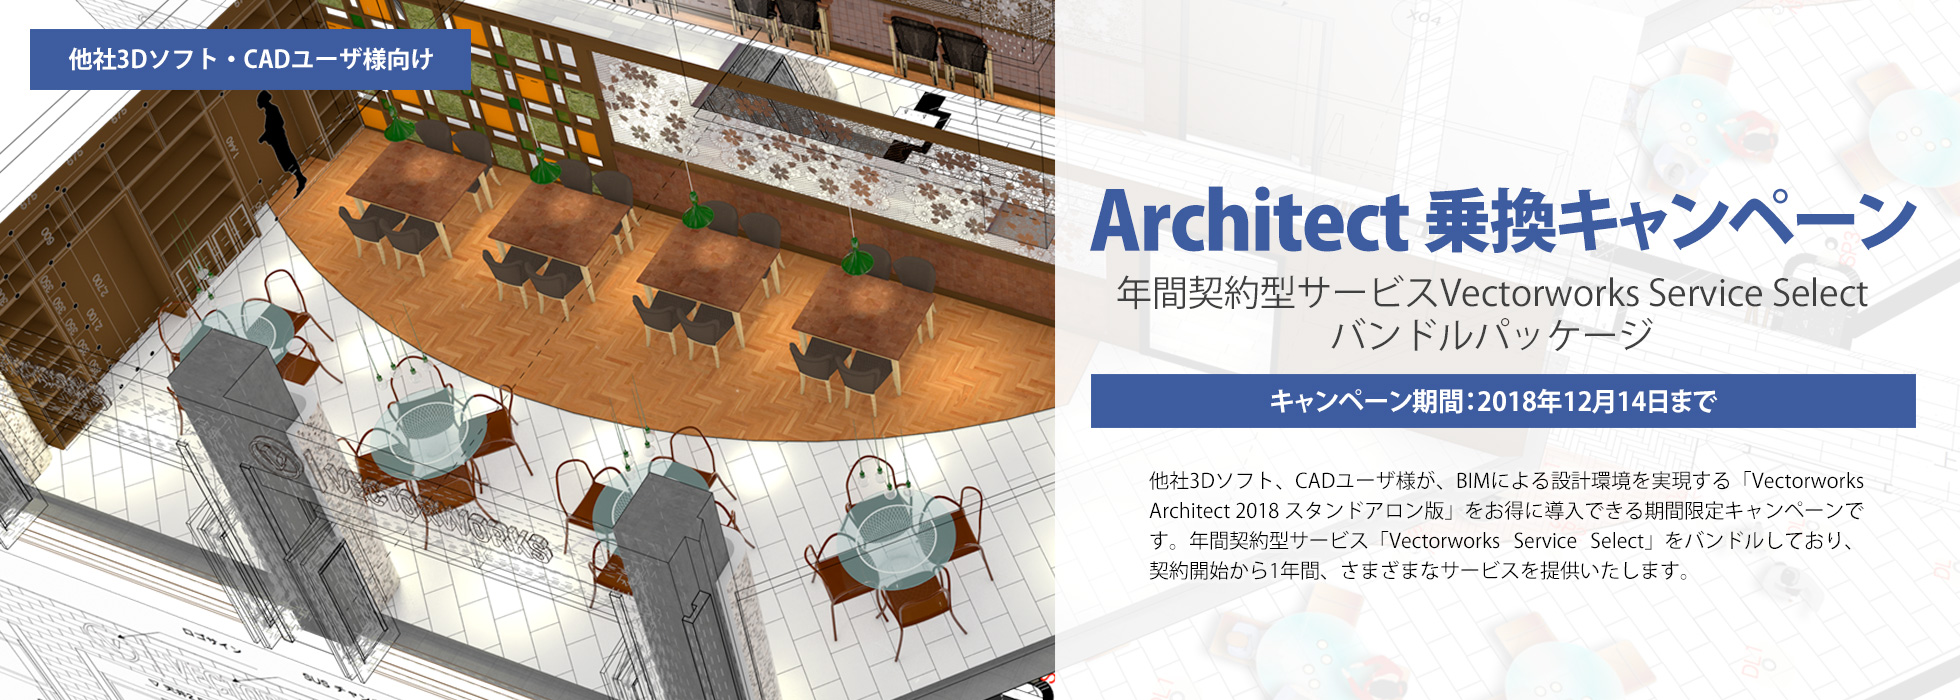 Vectorworks 学生単年度版 - software.univcoop.or.jp